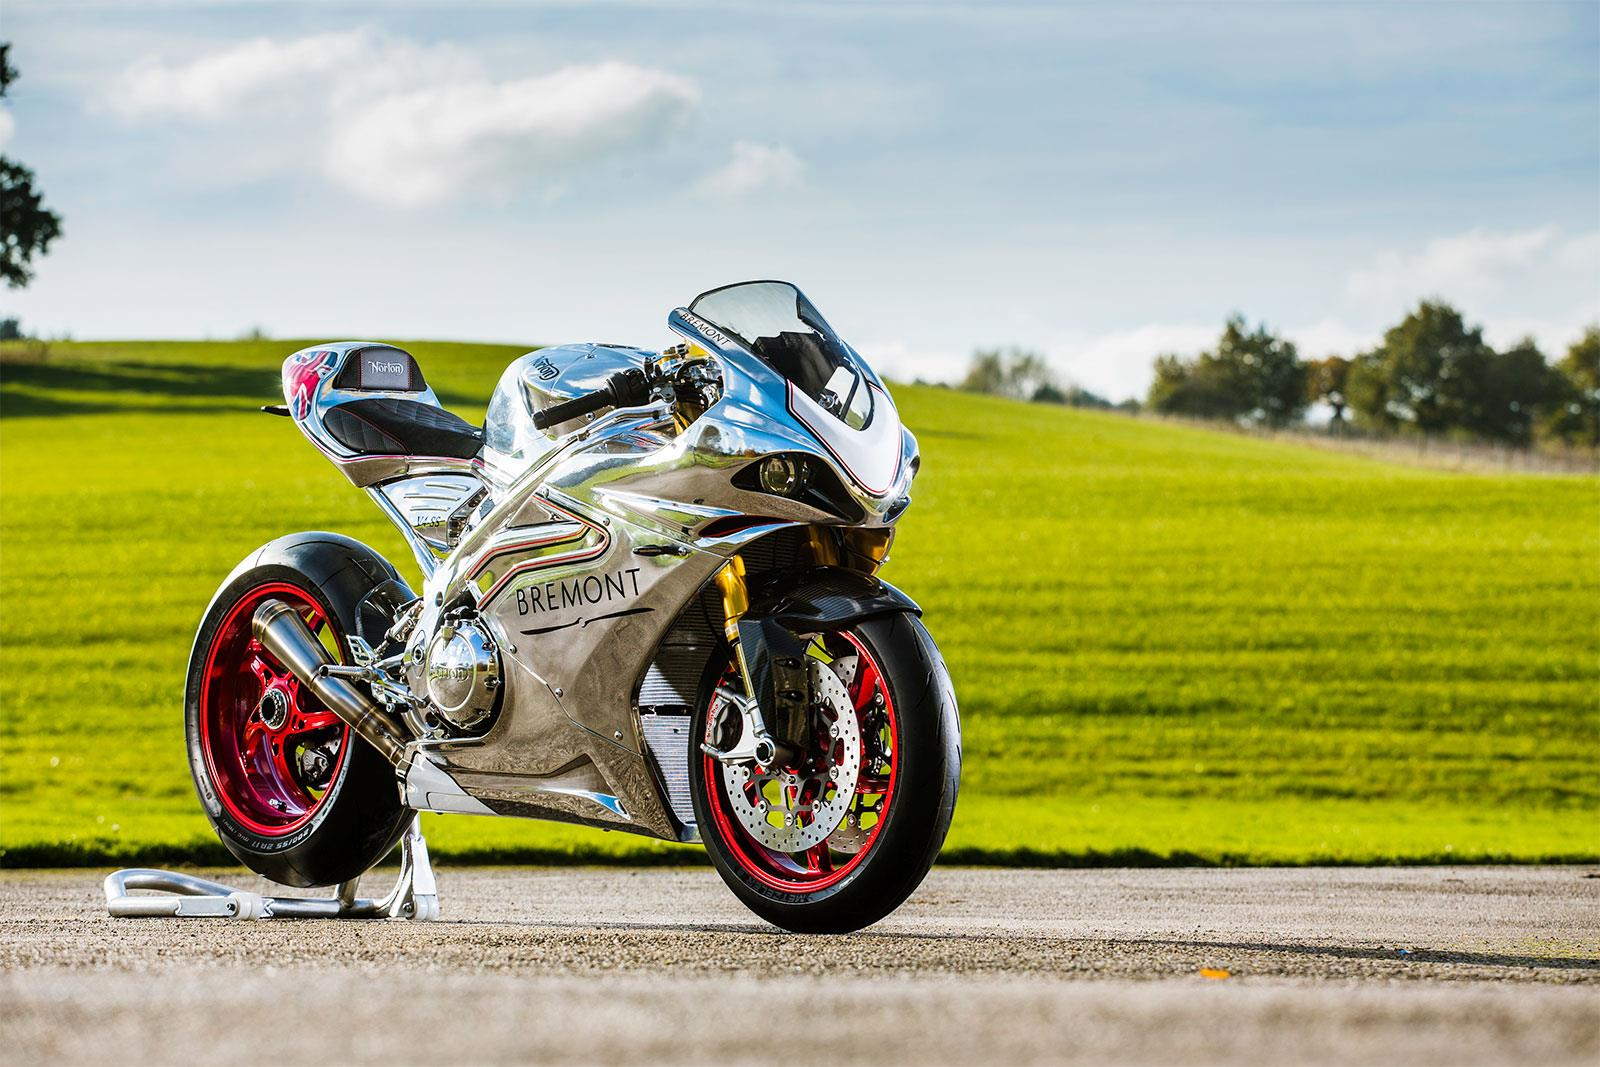 Norton design 650cc twin for Chinese firm